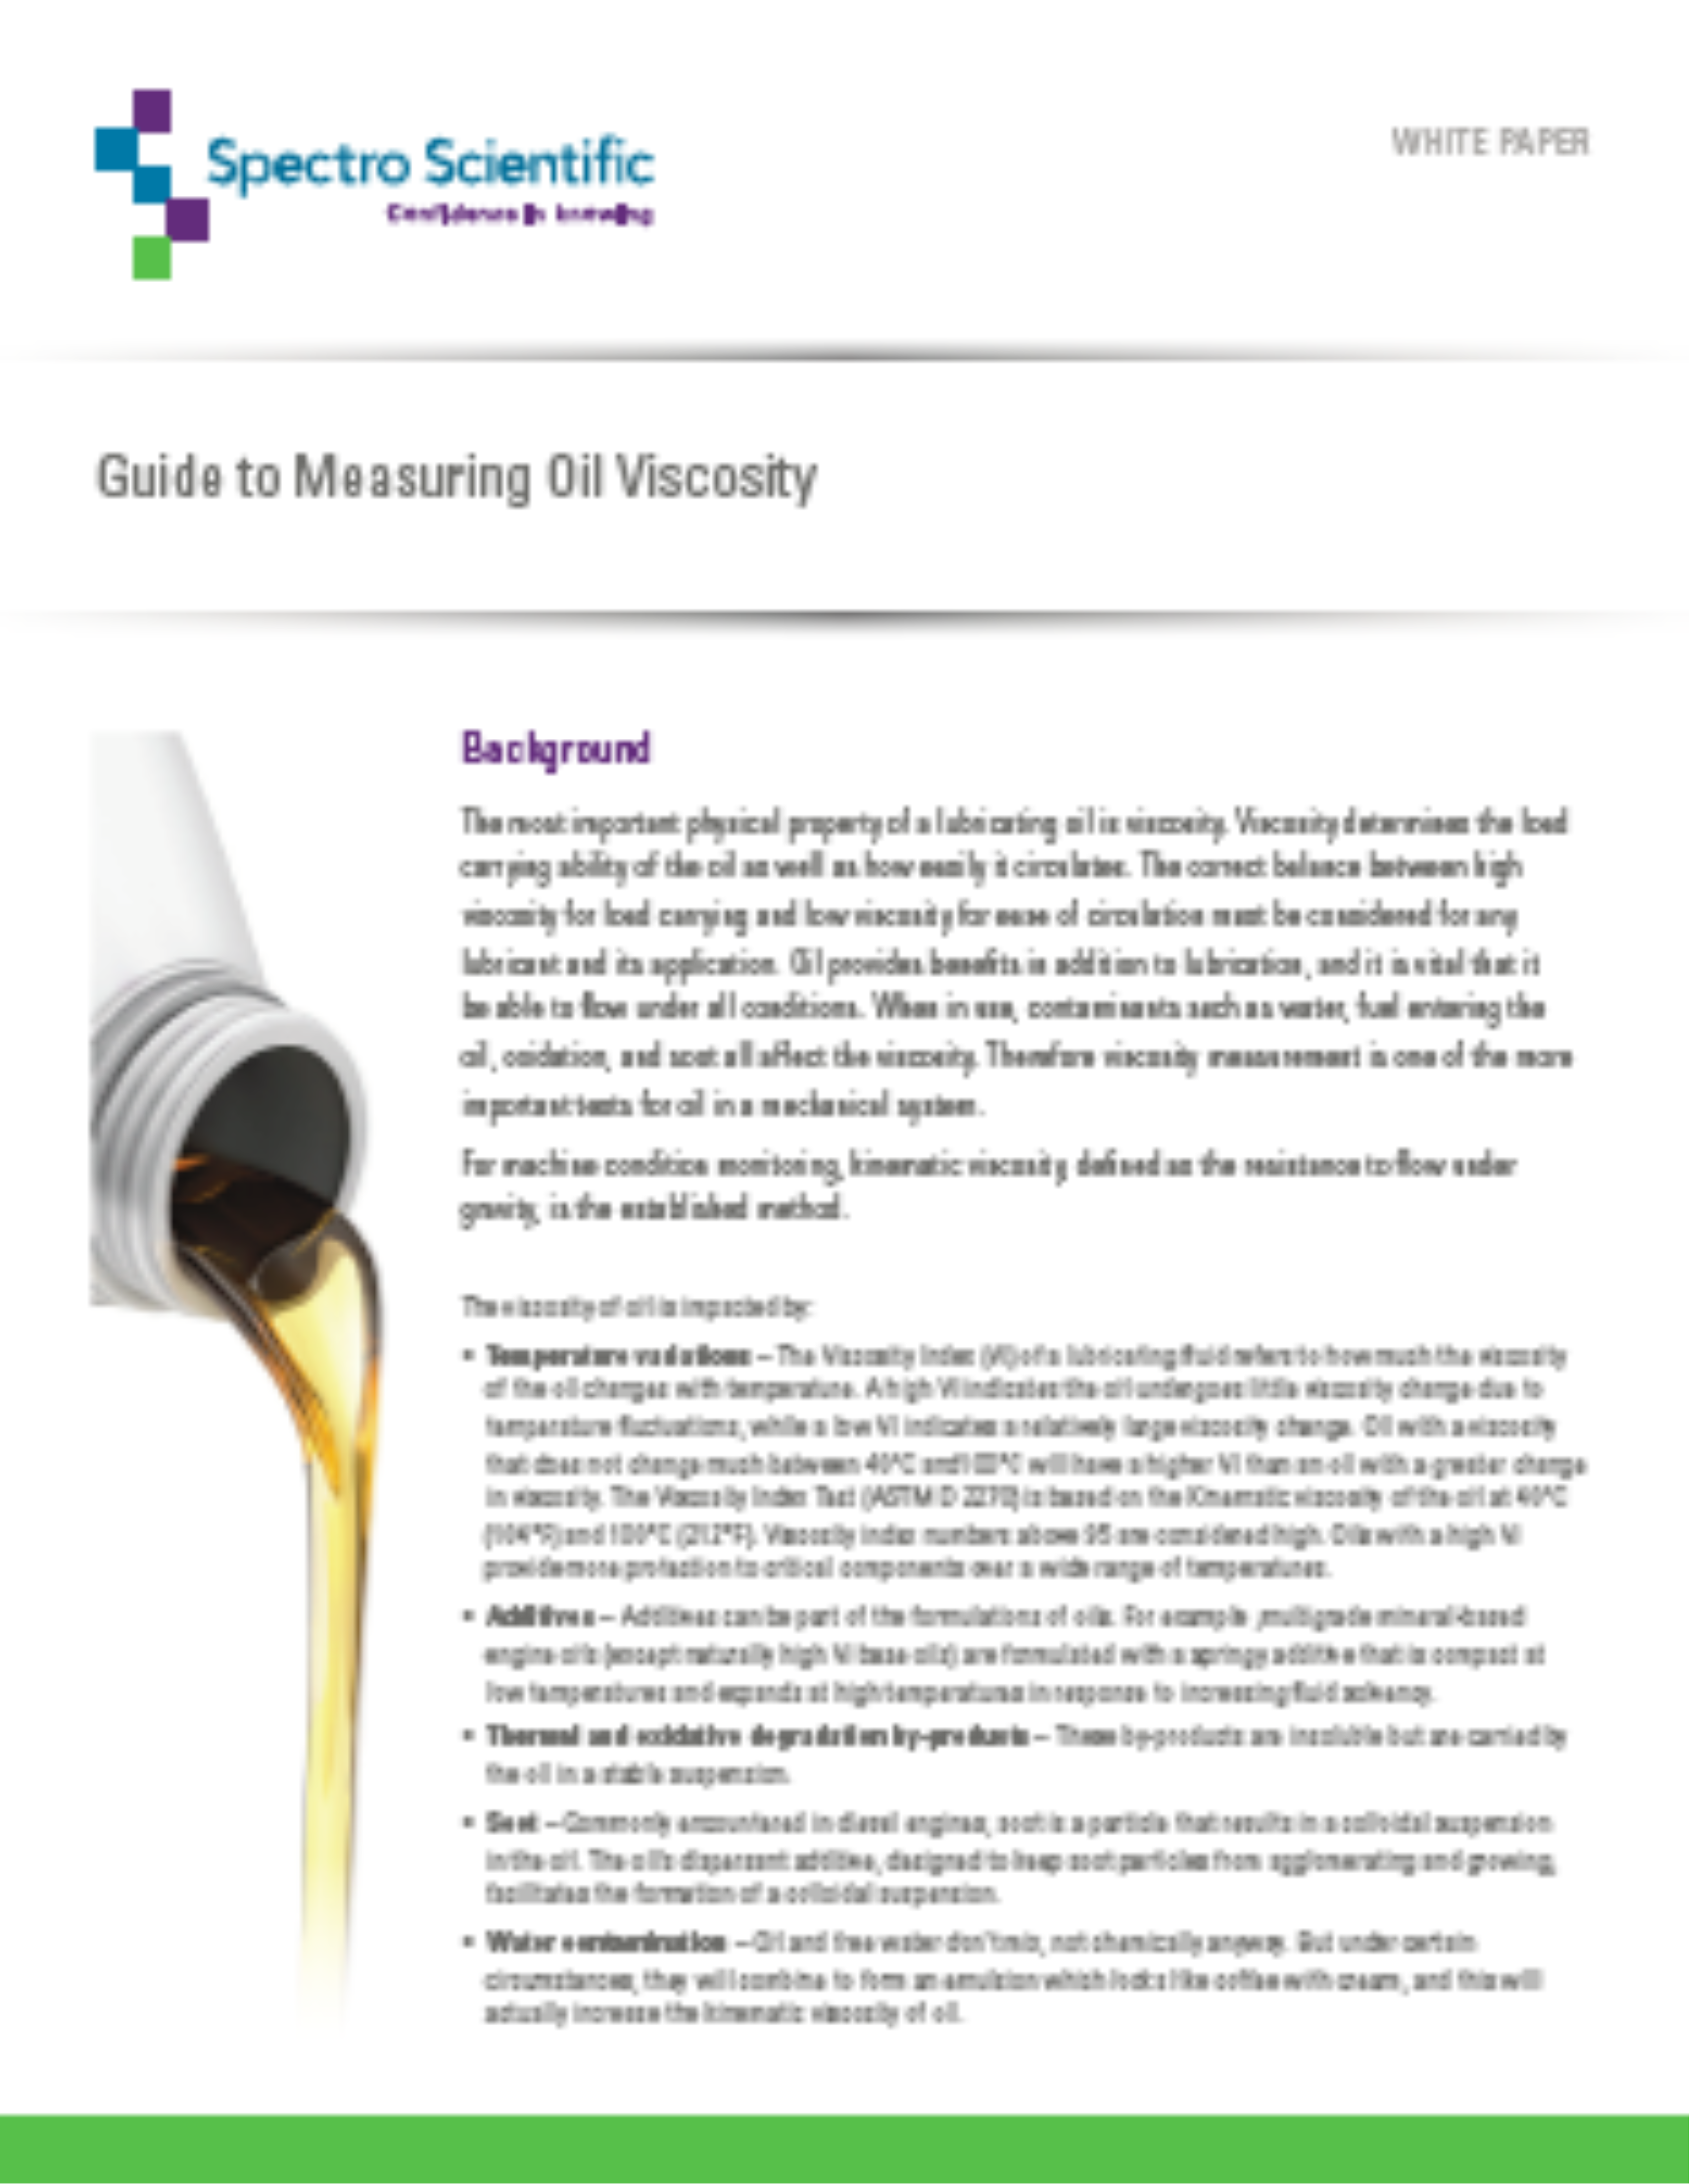 Guide_to_Measuring_Oil_Viscosity_Thumbnail.png